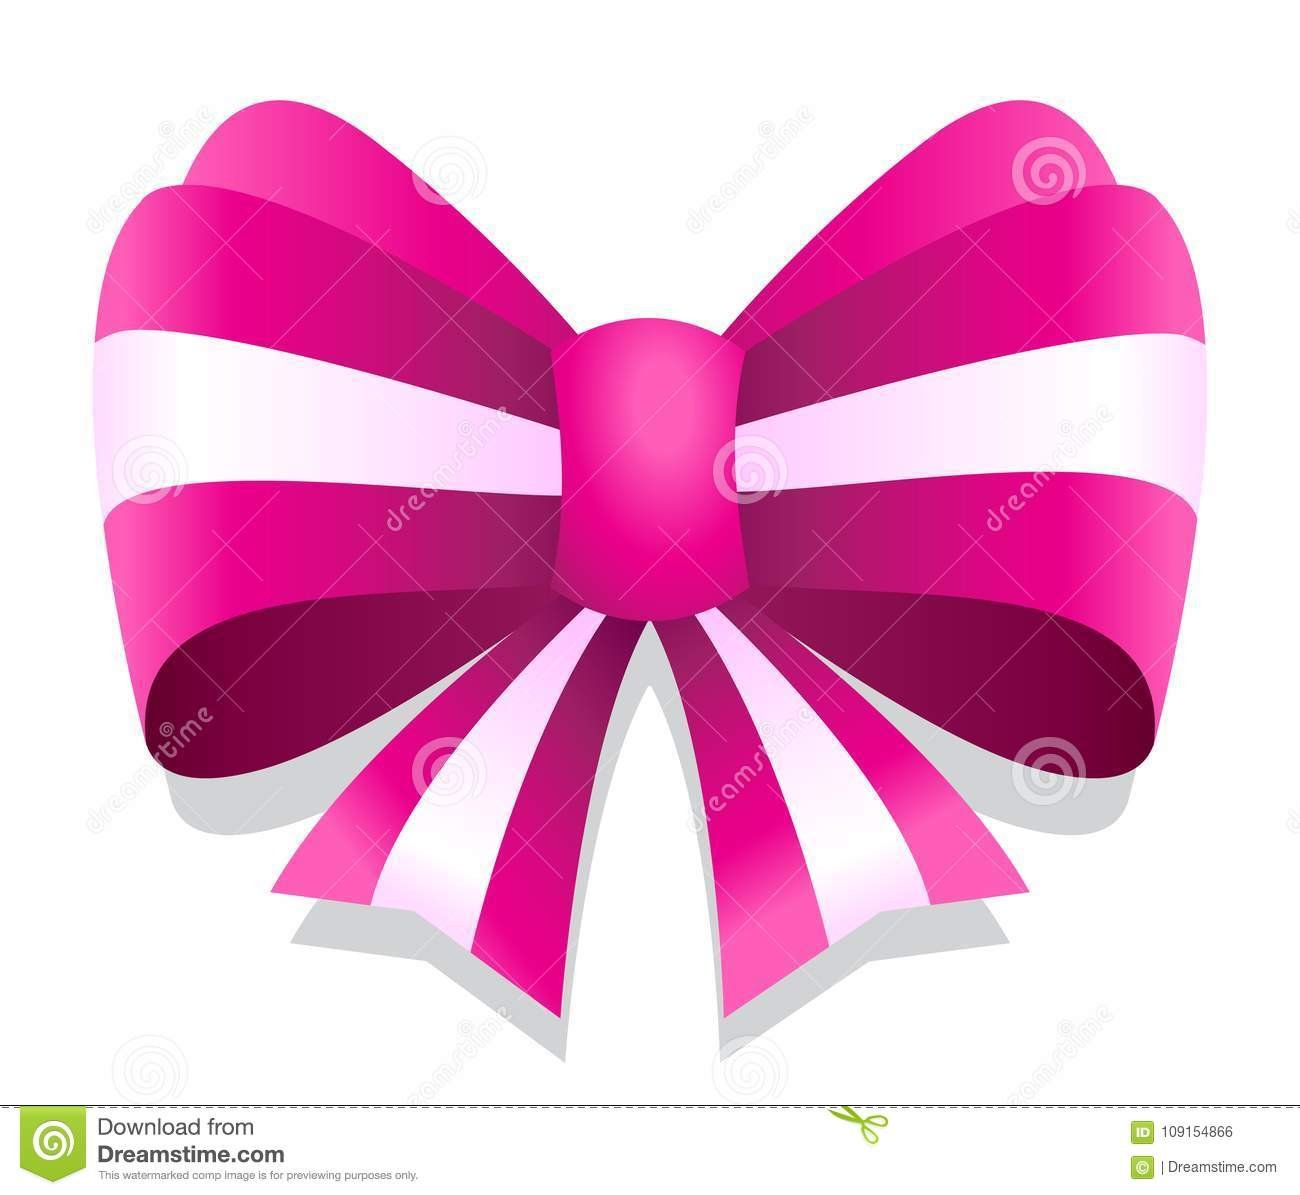 Bow Graphic Stock Illustrations 96 533 Bow Graphic Stock Illustrations Vectors Clipart Dreamstime